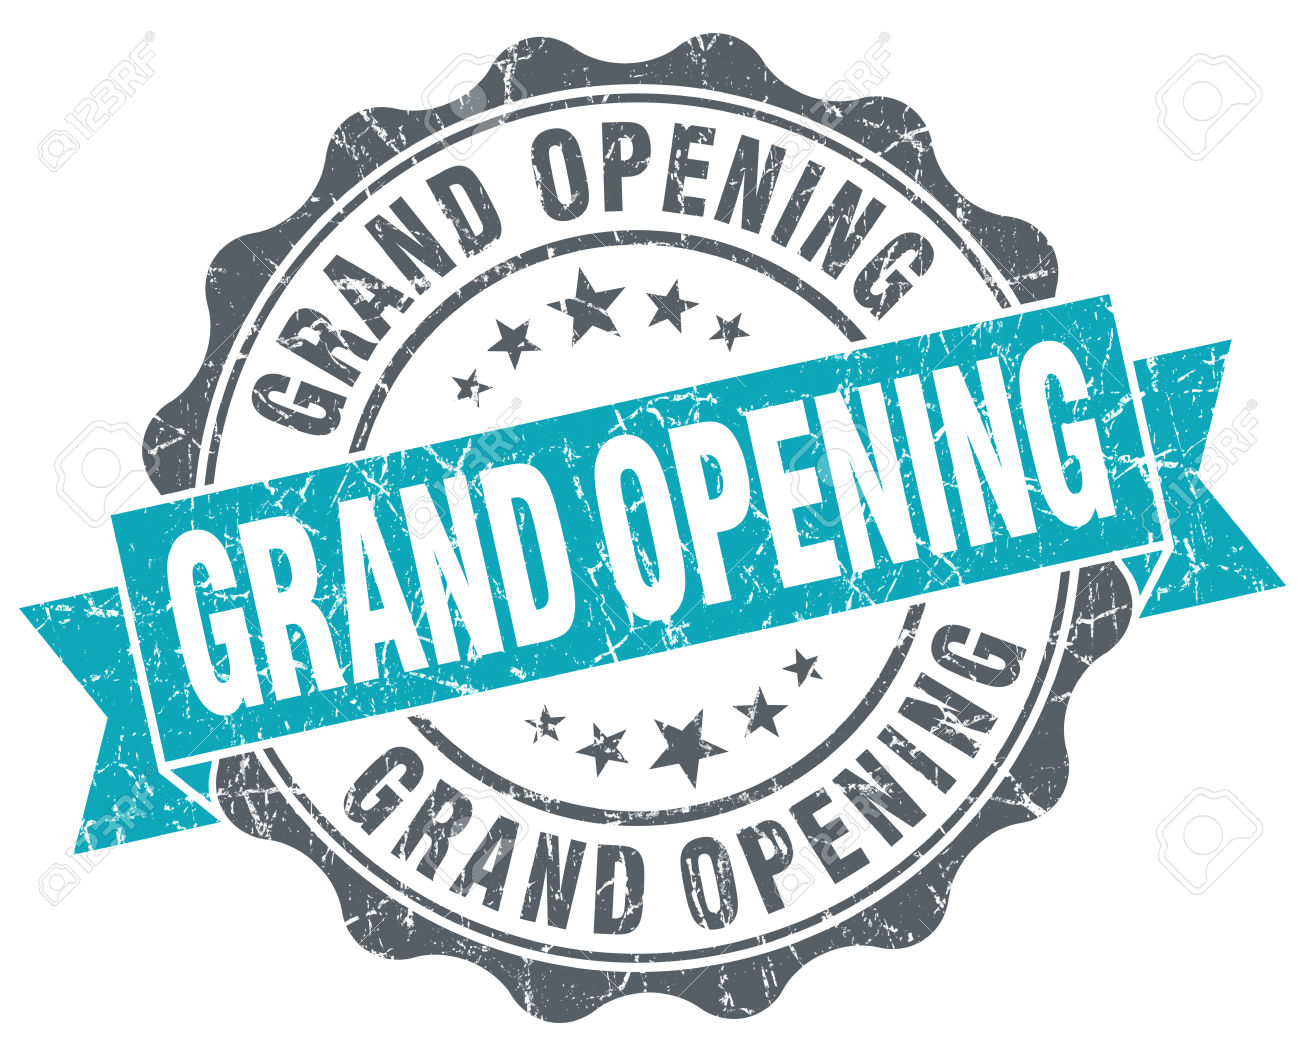 grand opening at yelle s boutique cass county calendar